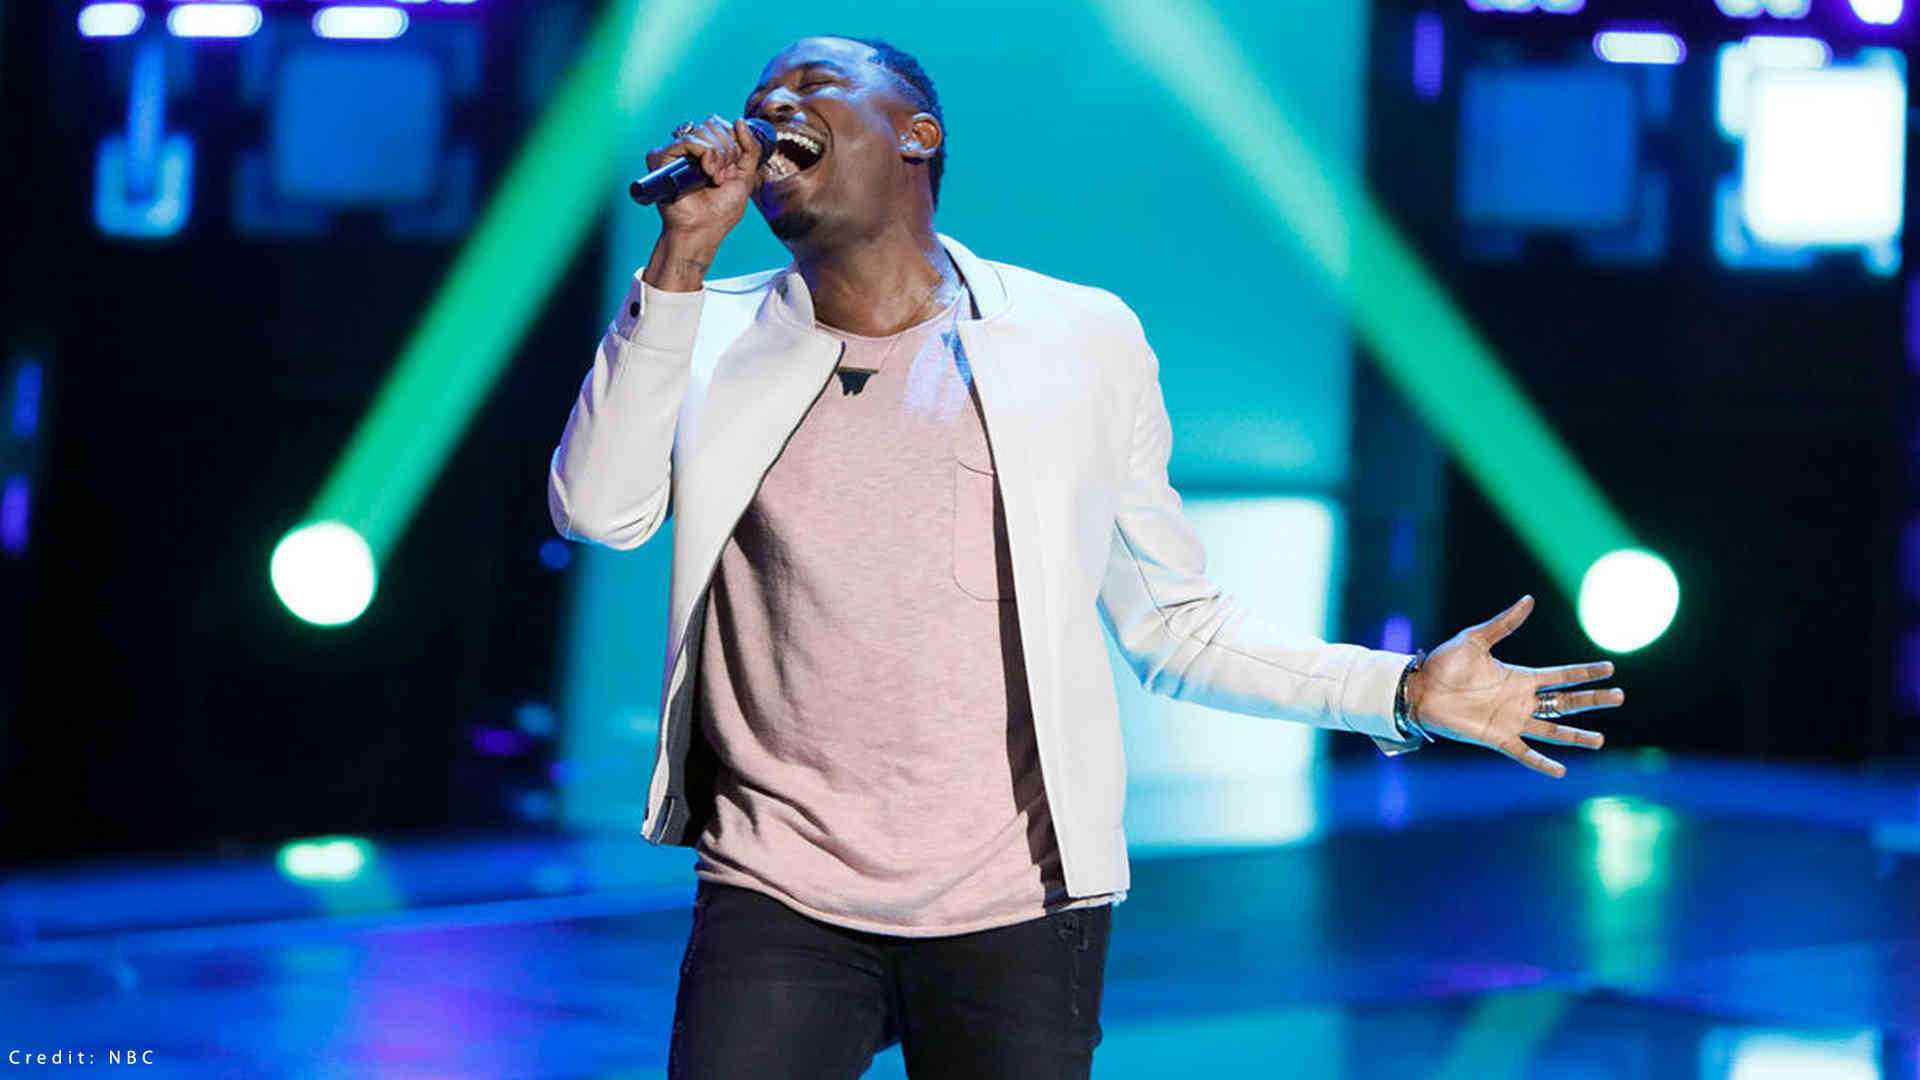 """Watch The Voice 2018 Blind Audition of Rayshun Lamarr """"Don't Stop Believin"""" in The Voice 2018 season 14 Blind Audition 26 February 2018"""